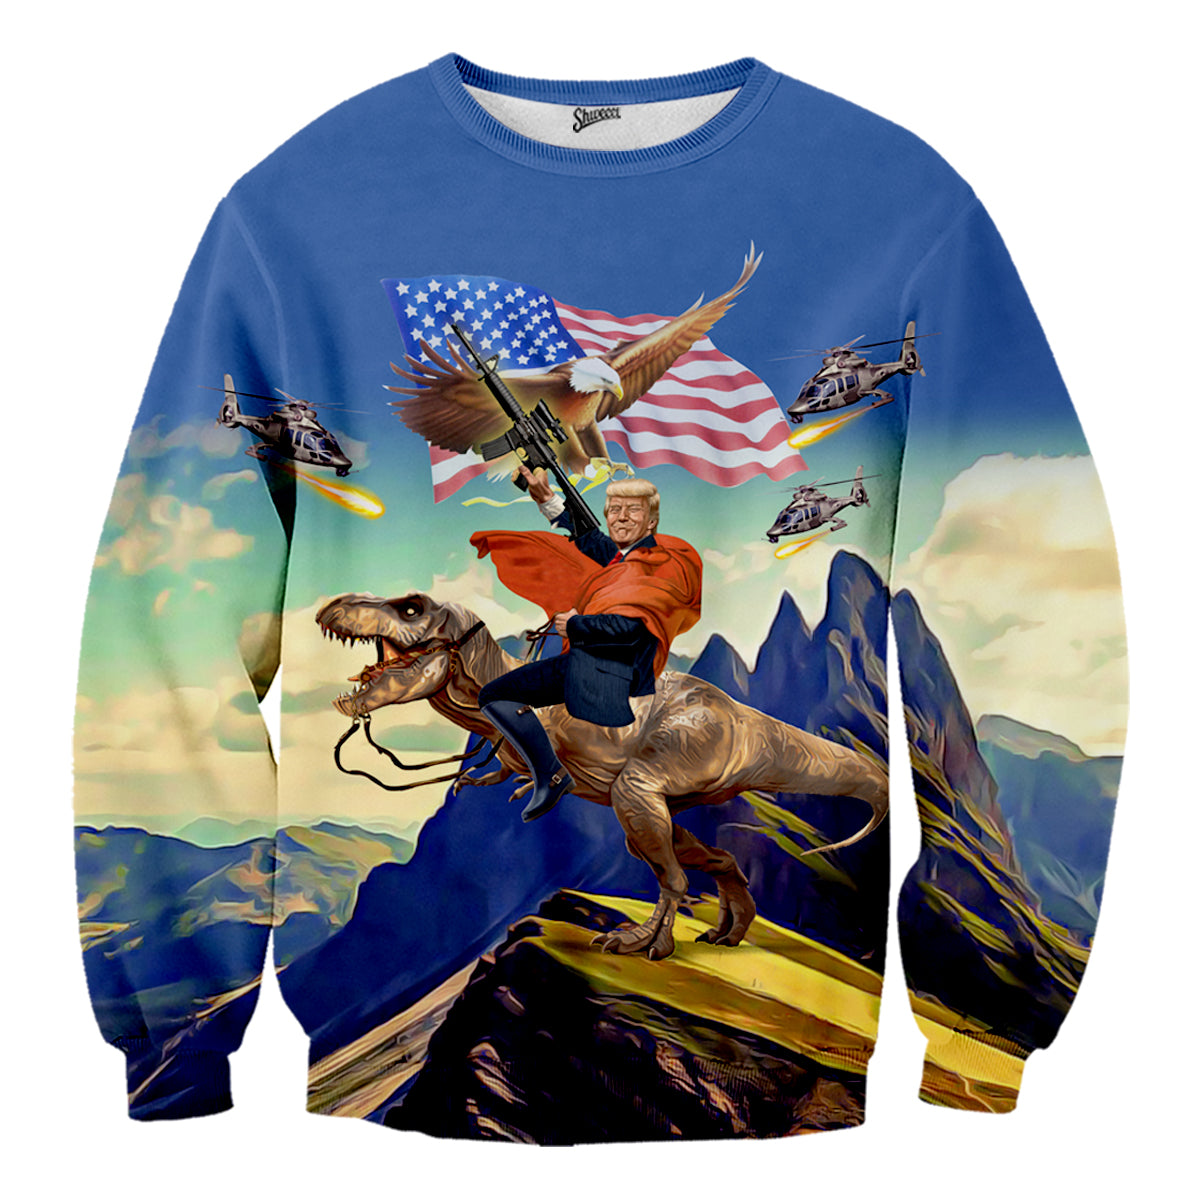 Donald Trump T Rex Sweater - Shweeet